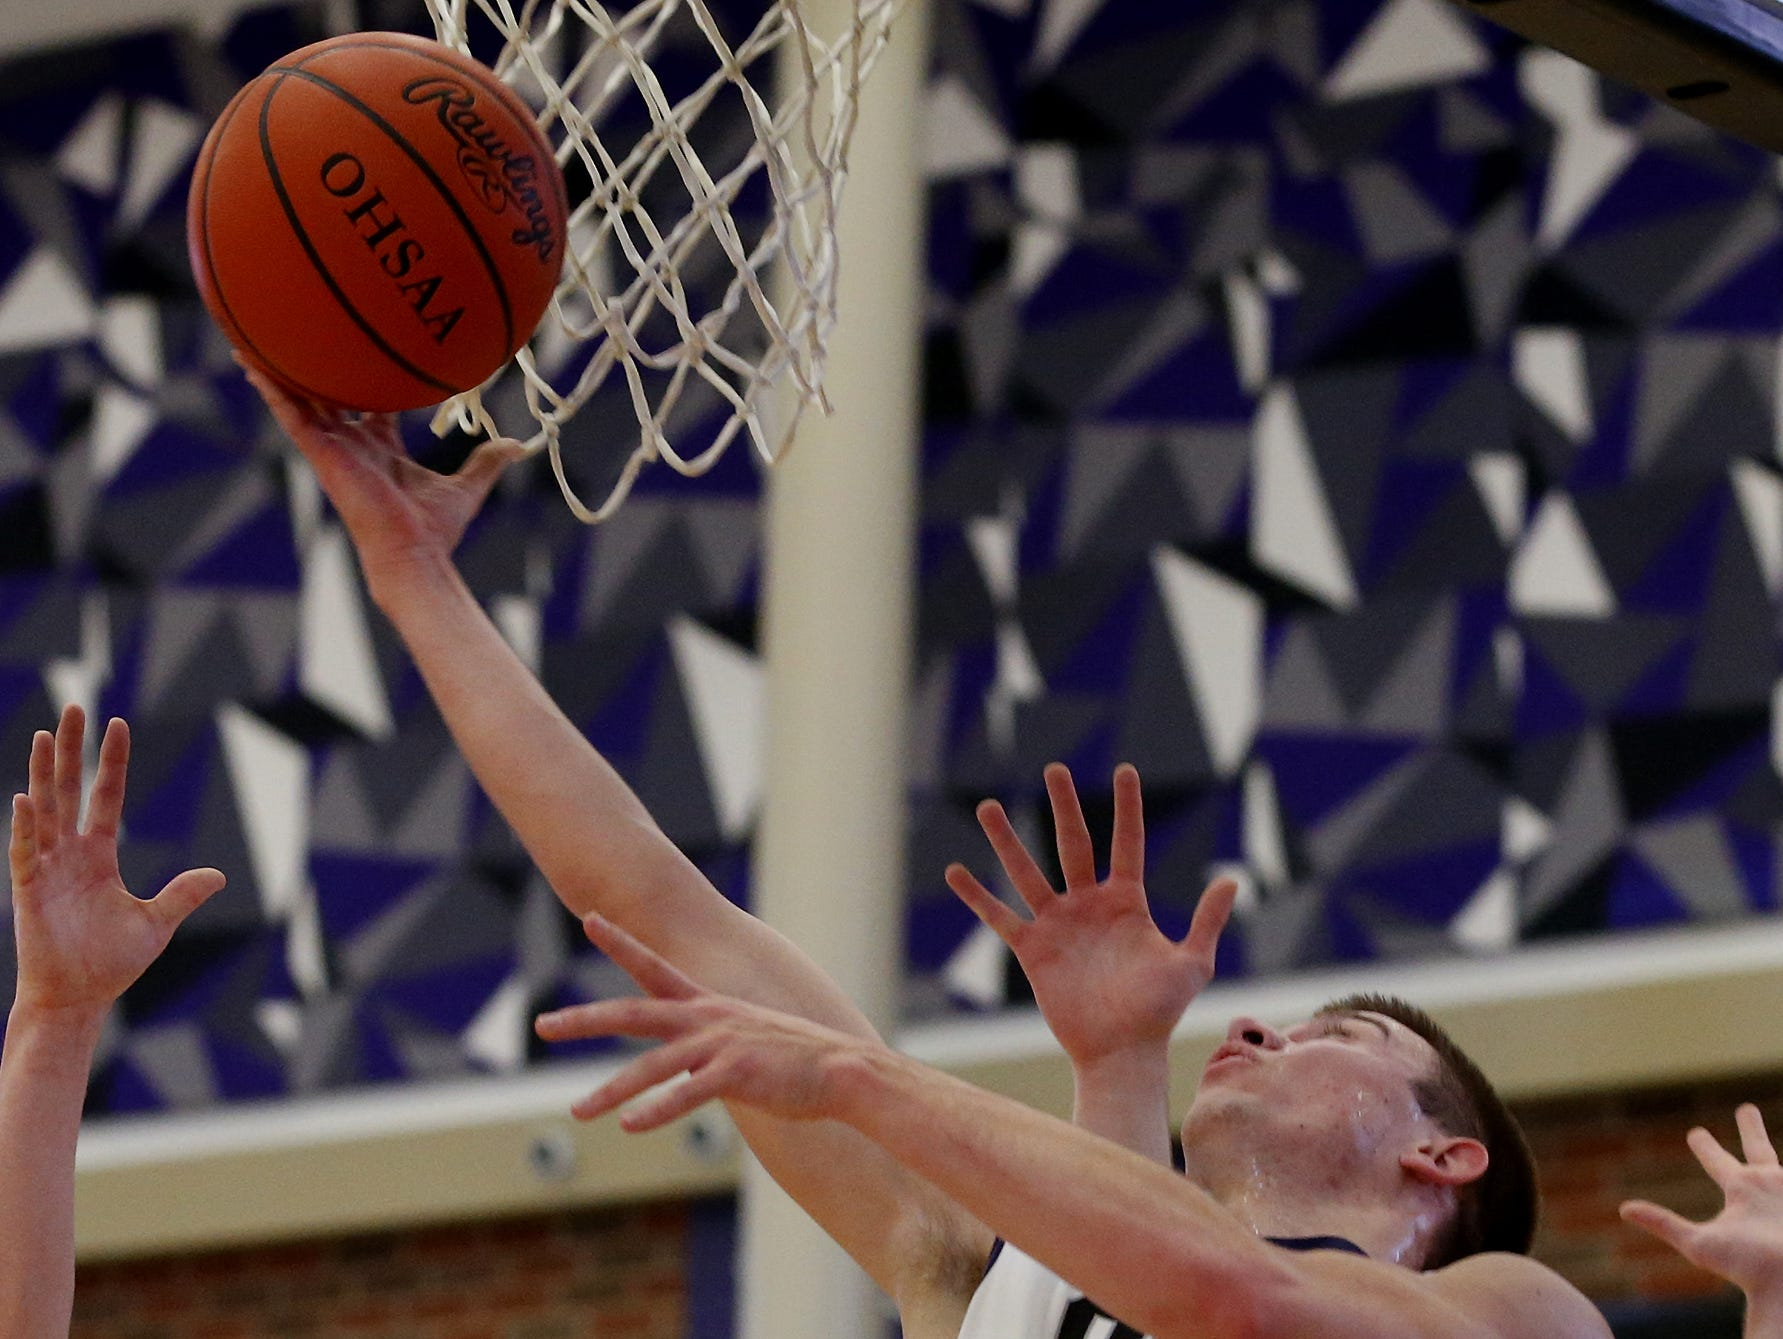 Cincinnati Hills Christian Academy guard Jack Kolar scores against Sycamore during the Midwest King Classic at Jerry Lucas Court in Wade E. Miller Arena in Middletown Saturday, Jan. 19, 2019.